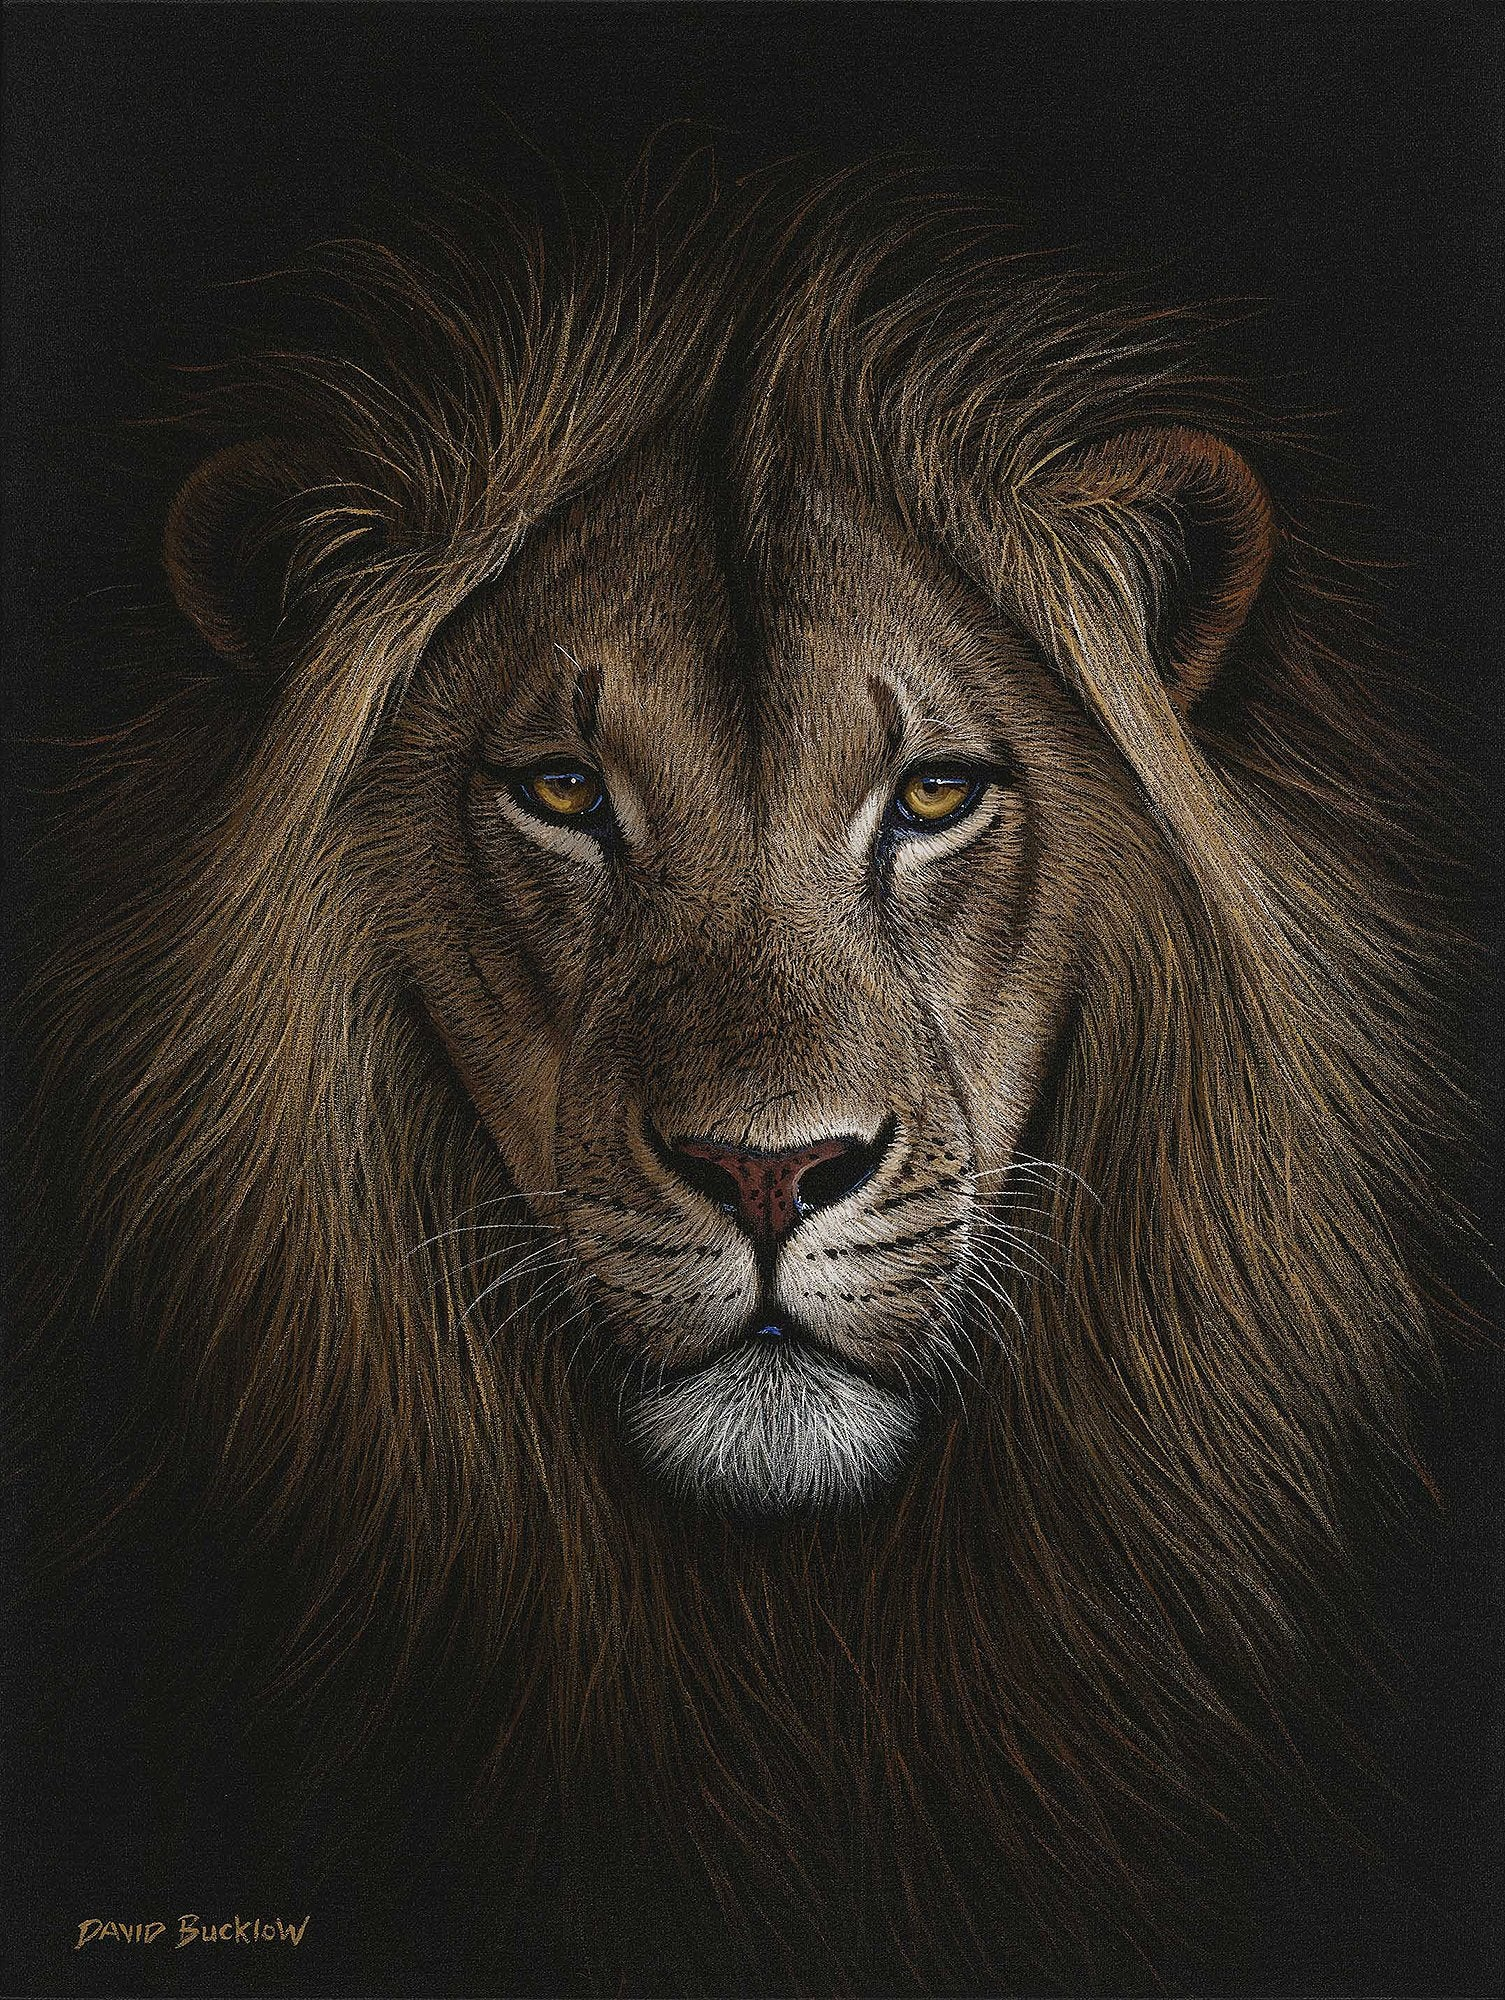 South African Limited Editions by David Bucklow - His Majesty - Male Lion - Fine Art Portfolio